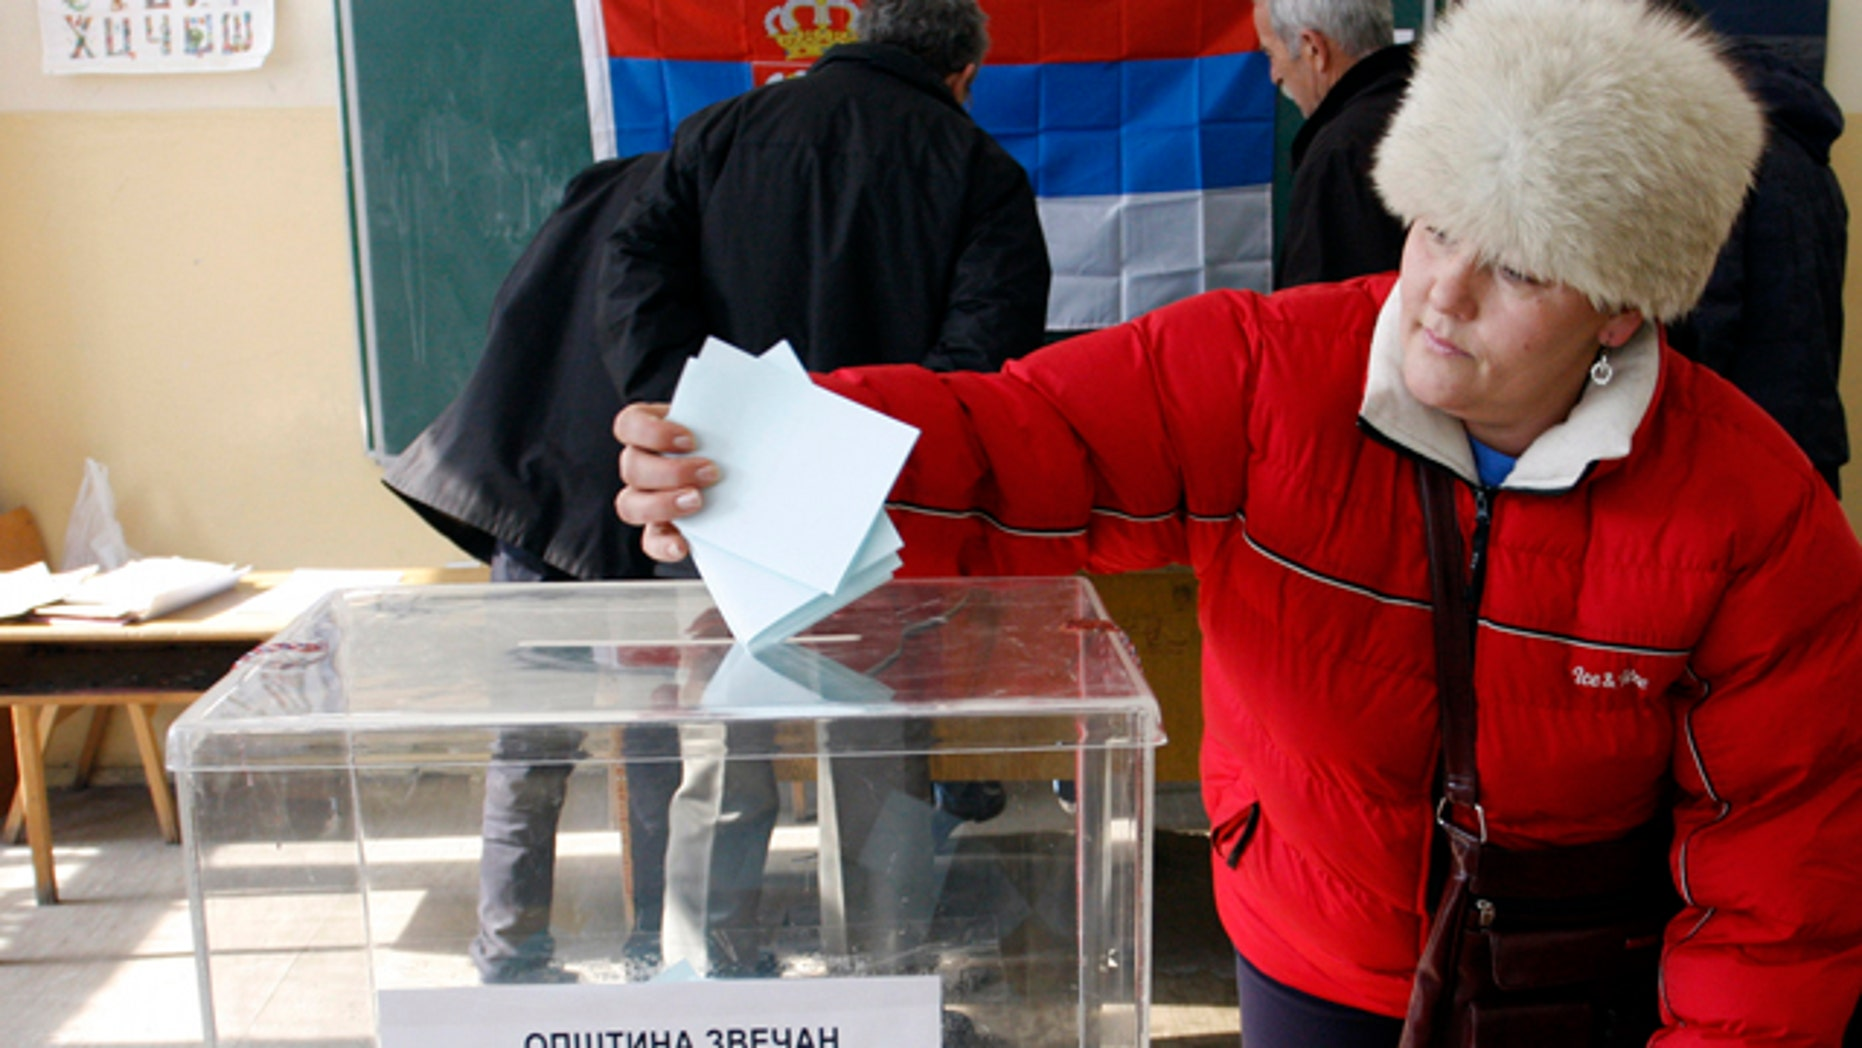 Feb. 14, 2012- A woman casts his ballot at the poilling station in Zvecan, Kosovo. Defiant Serbs in northern Kosovo voted Tuesday in a referendum that is likely to overwhelmingly reject Kosovo's ethnic Albanian rule, further hindering Serbia's attempts to join the European Union.